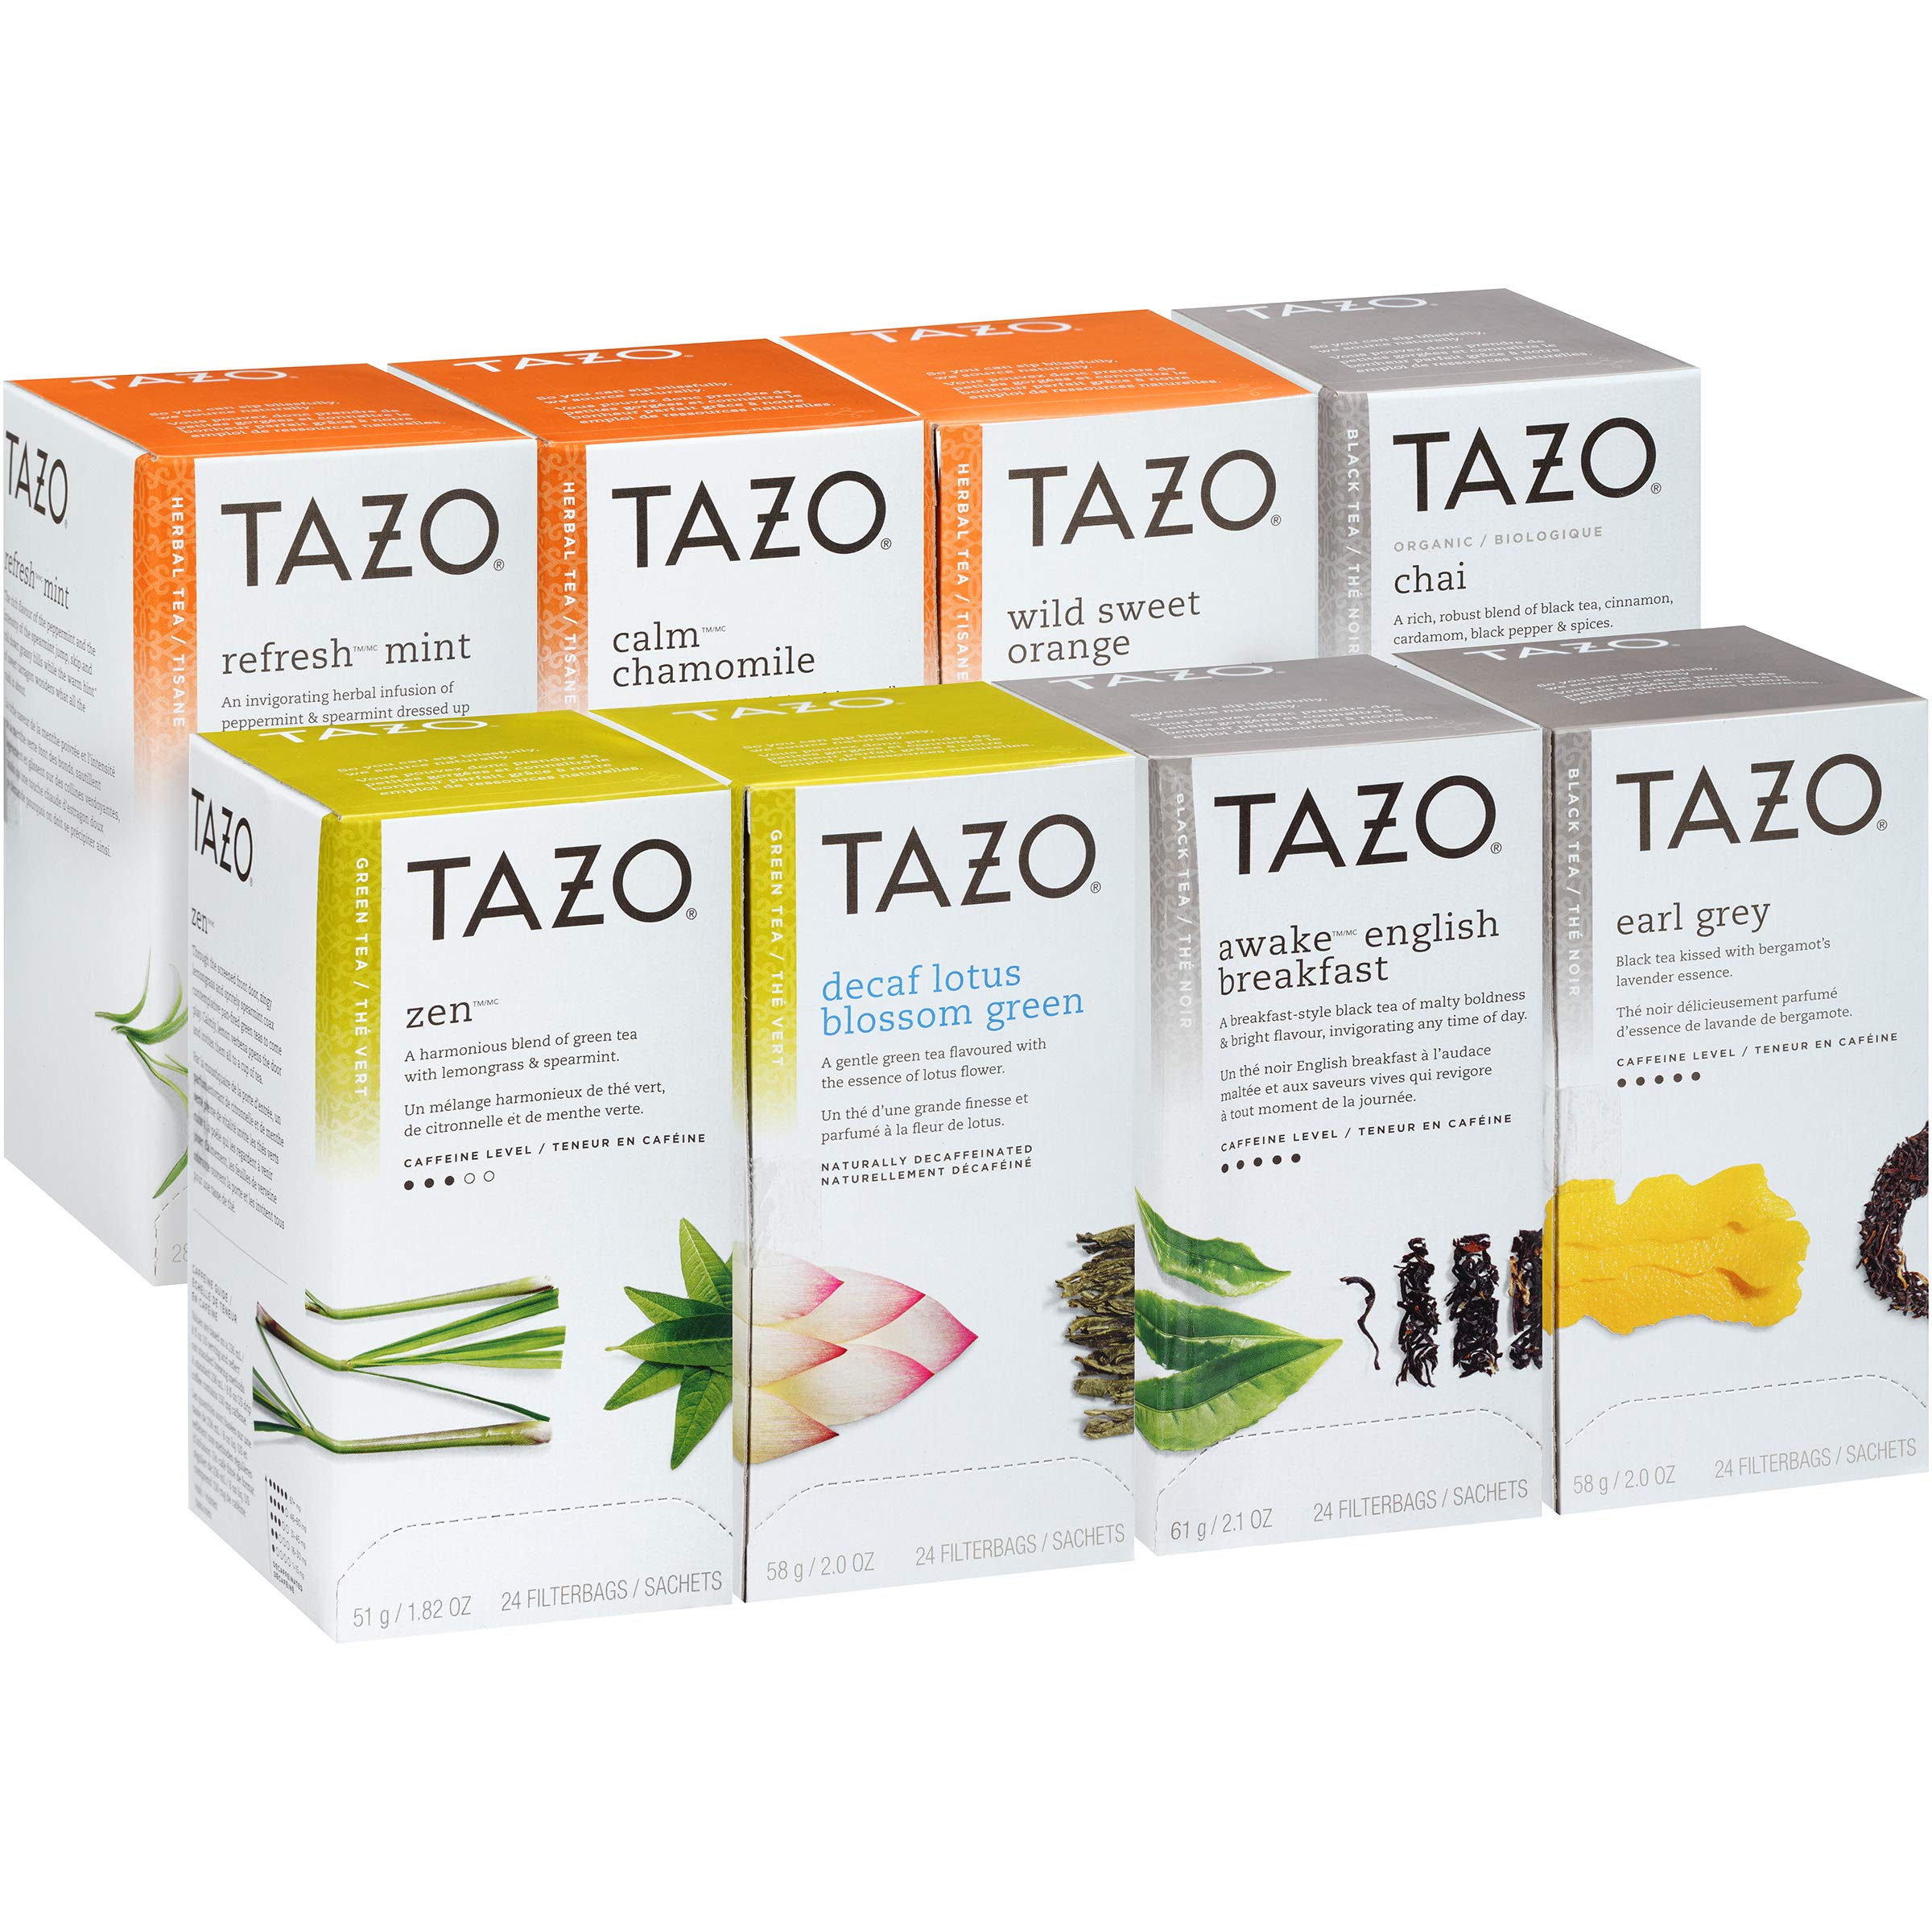 Tazo Hot Tea Filterbag Assorted Variety Pack 24Count, Pack of 16